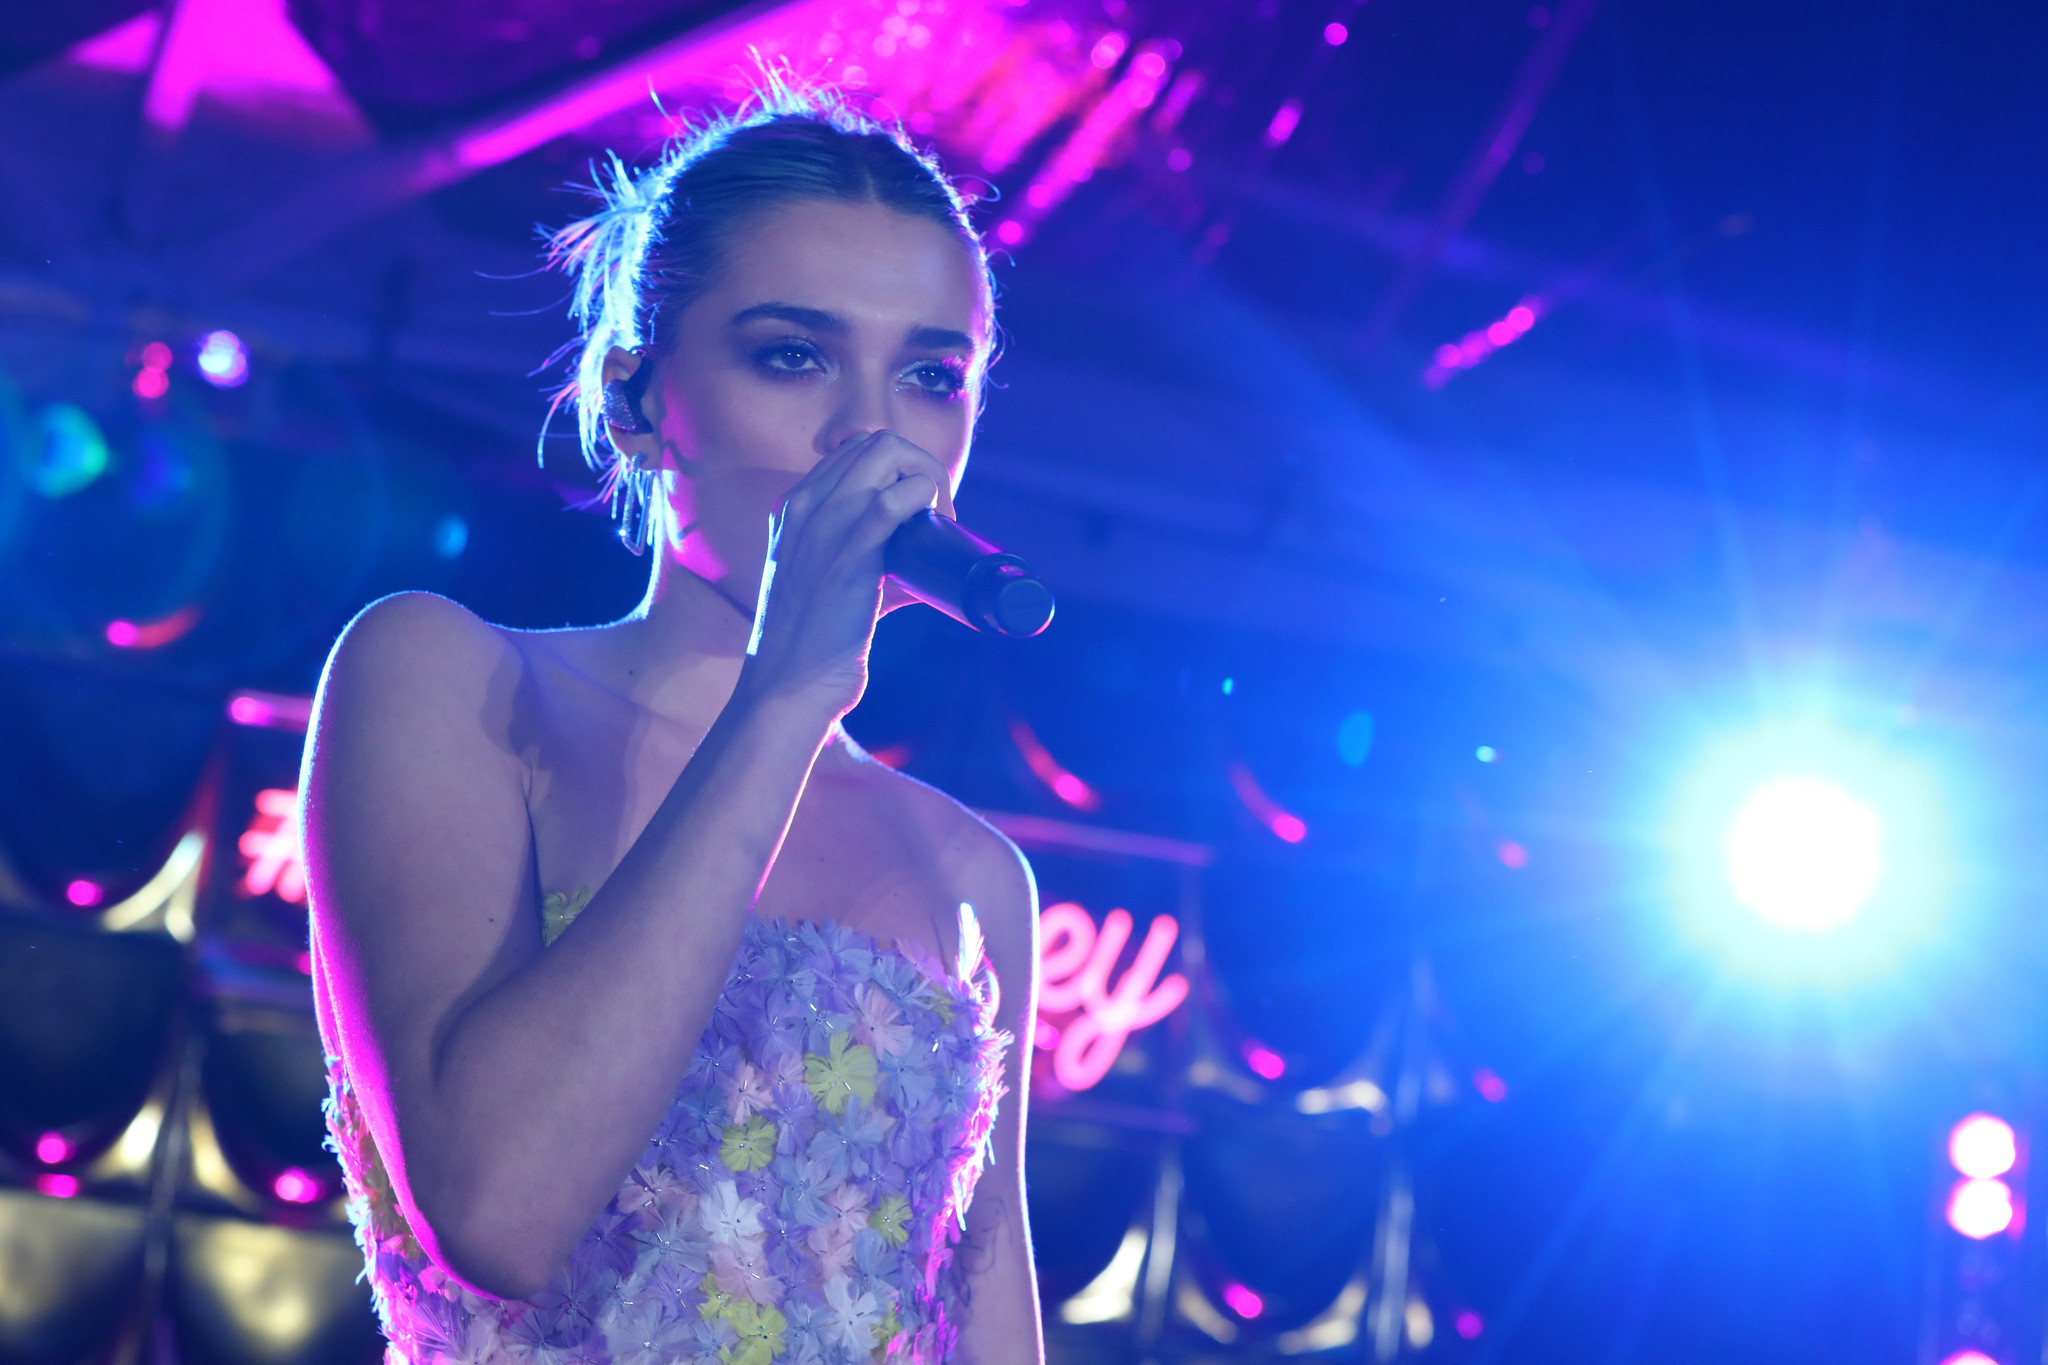 Singer Charlotte Lawrence has coronavirus, urges fans to self-quarantine: 'Think about your grandparents'